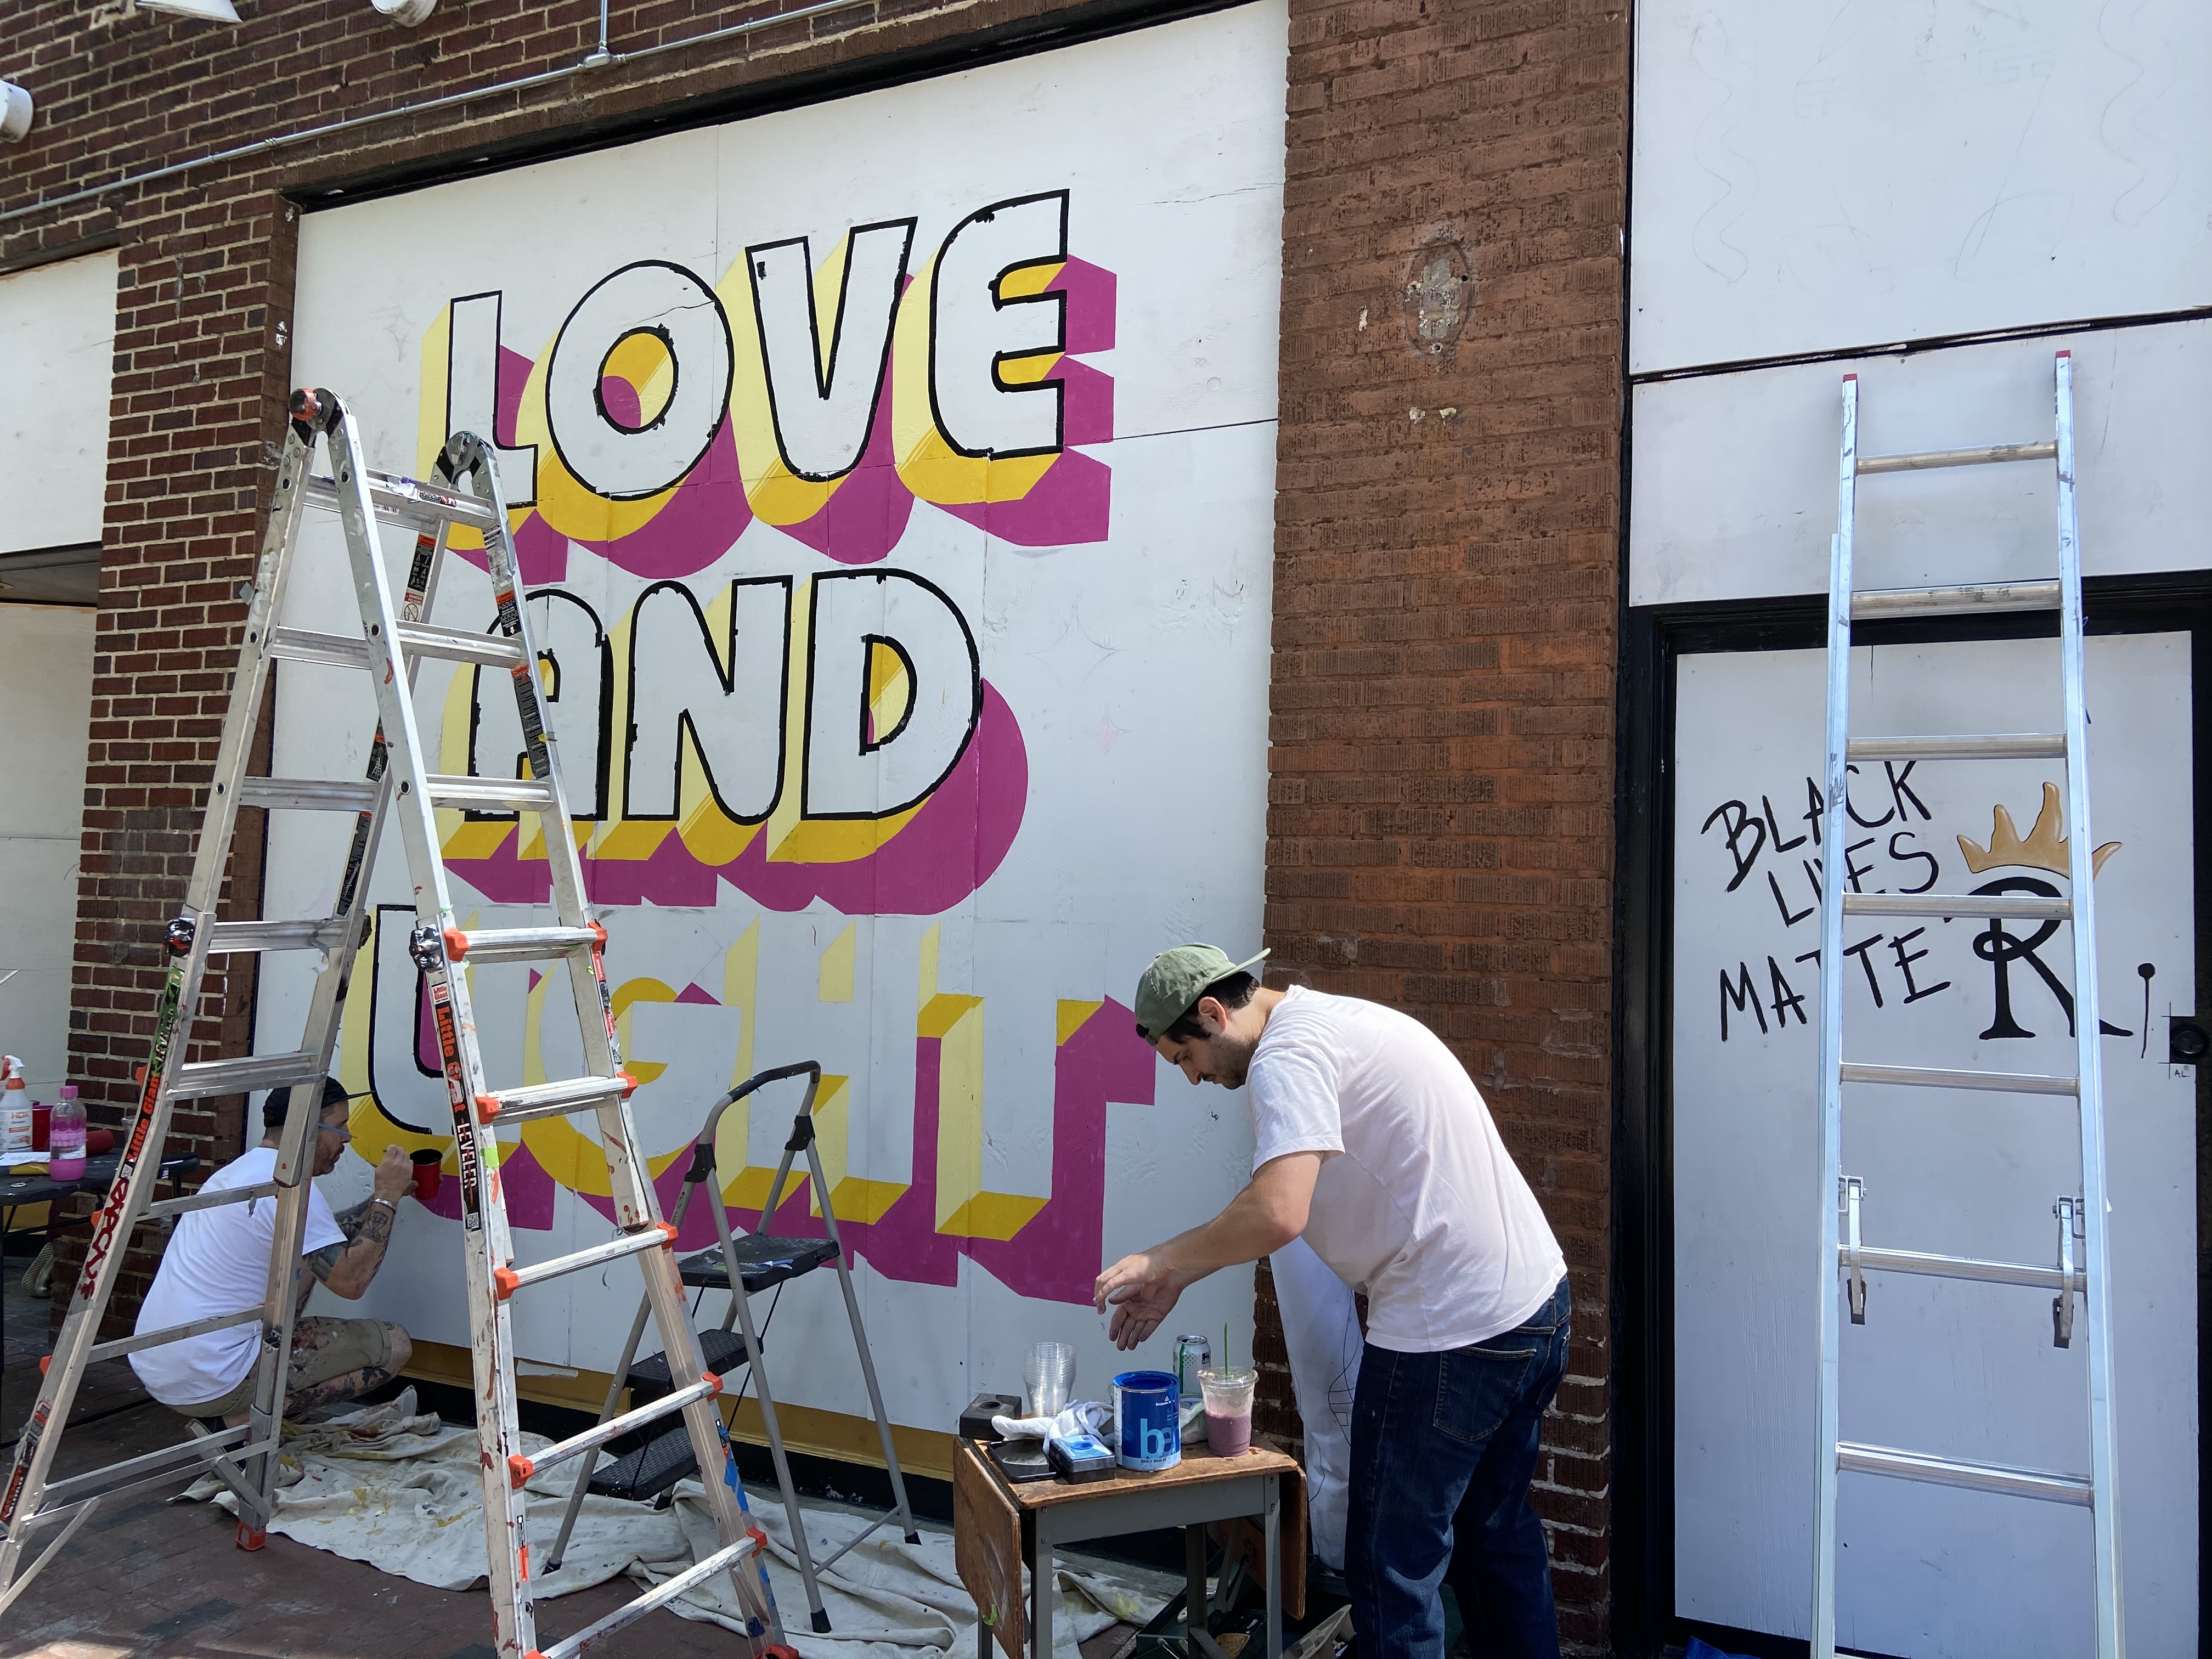 Murals painted on boarded up walls at Royale in downtown Raleigh